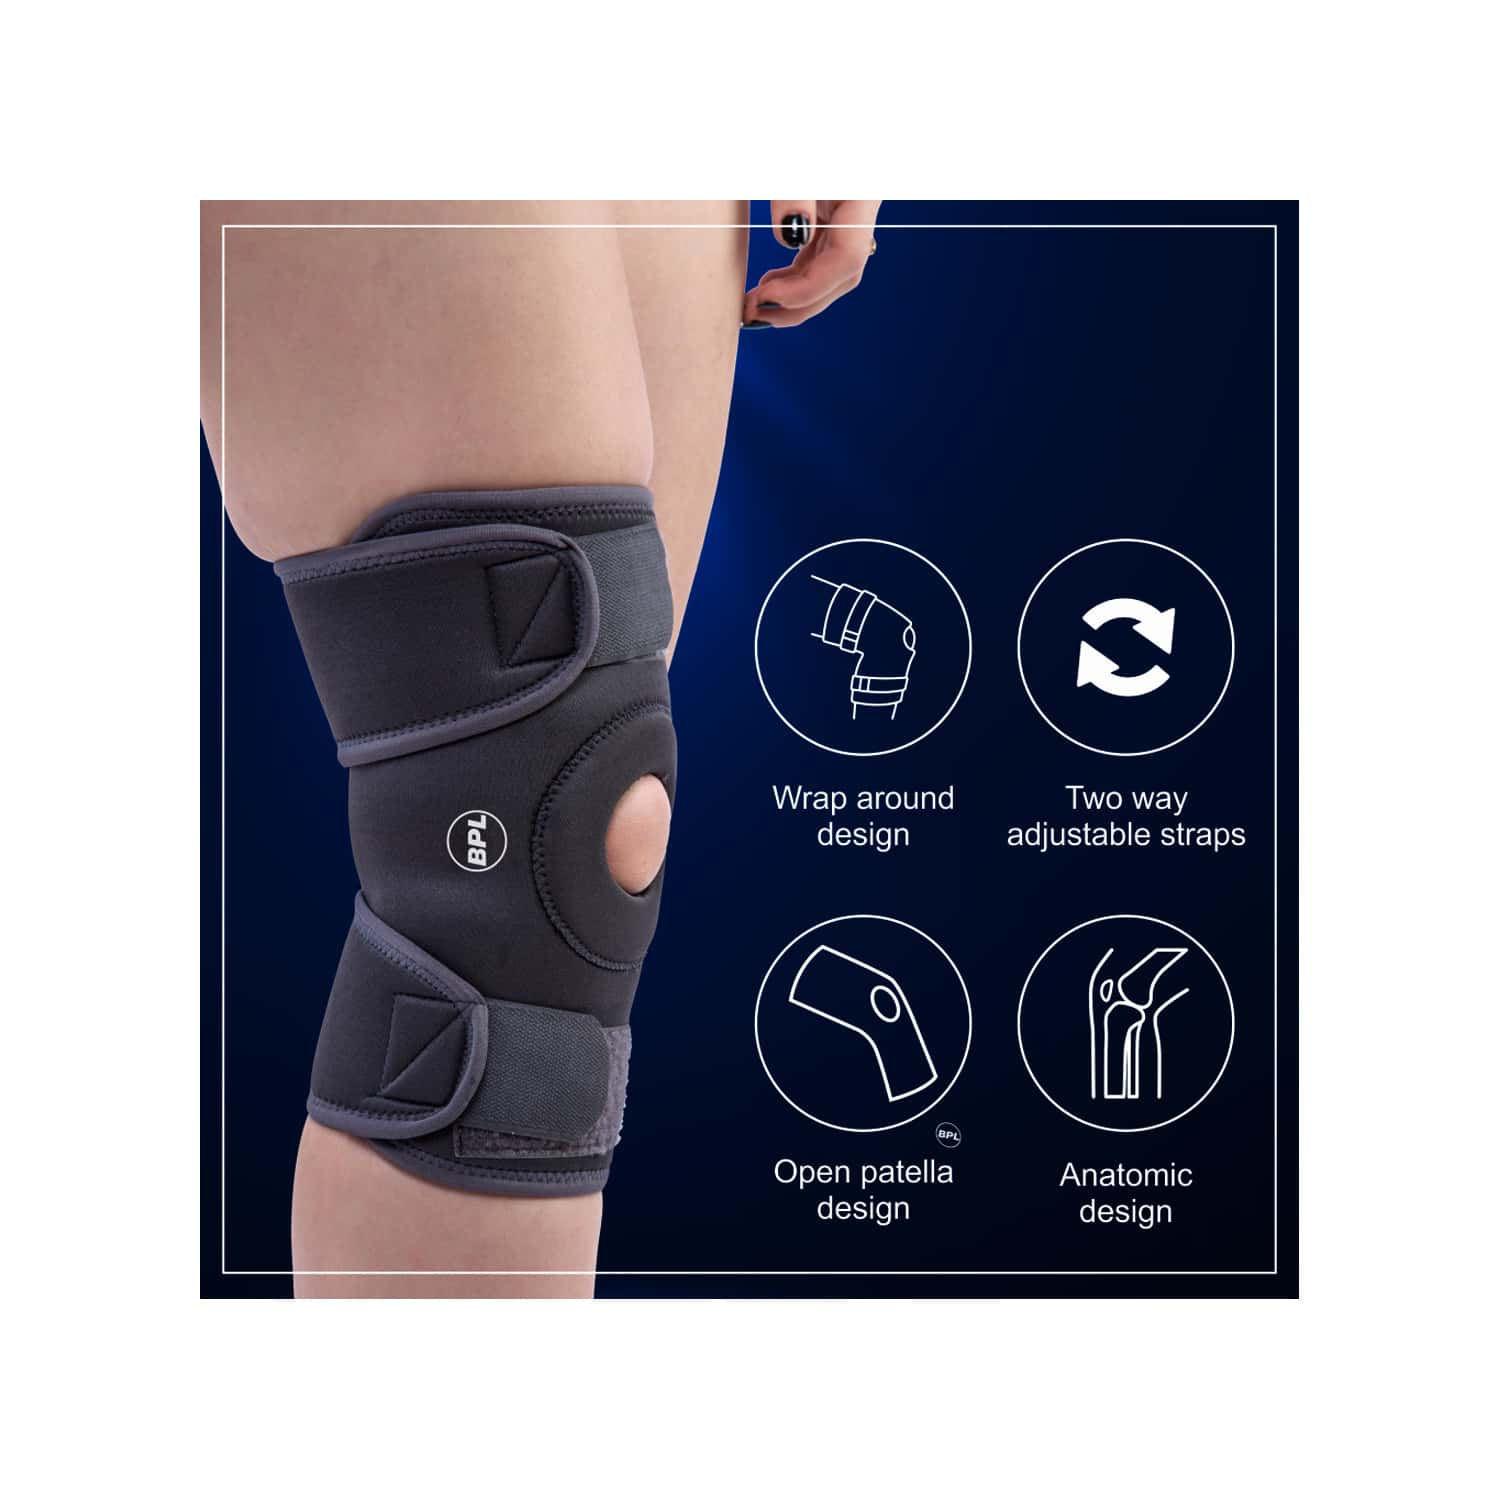 Bpl Orthocare Knee Wrap Grey - S - 1pc